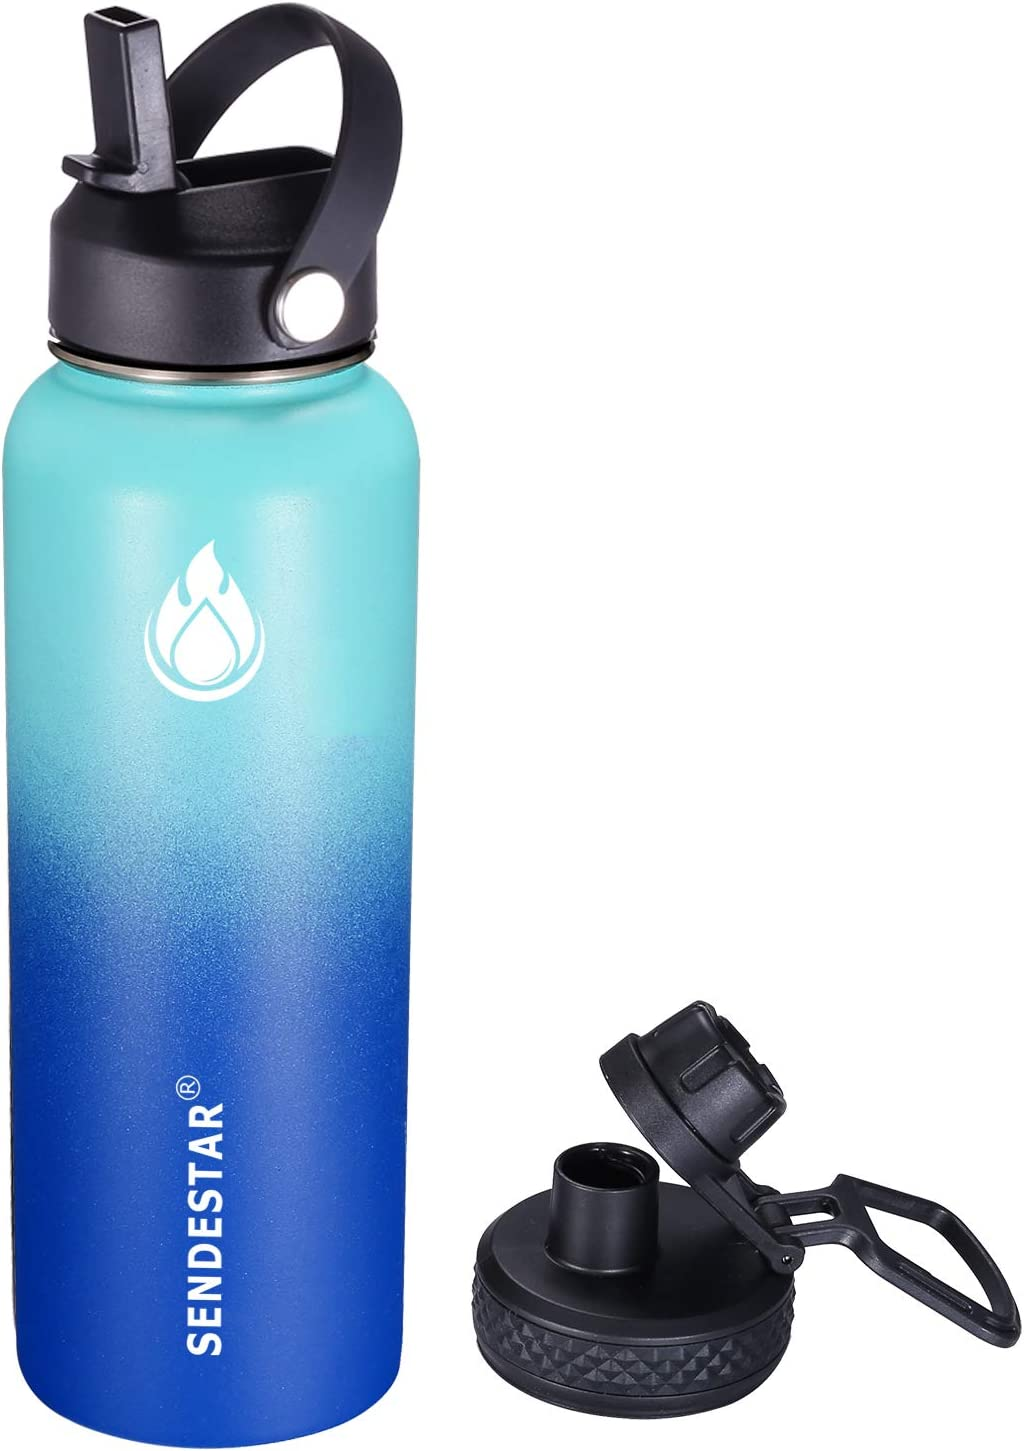 Sendestar Stainless Steel Water Bottle - 24oz, 32oz, 40oz, with New Straw Lid and Spout Lid, Keeps Liquids Hot or Cold with Double Wall Vacuum Insulated Sweat Proof Sport Design